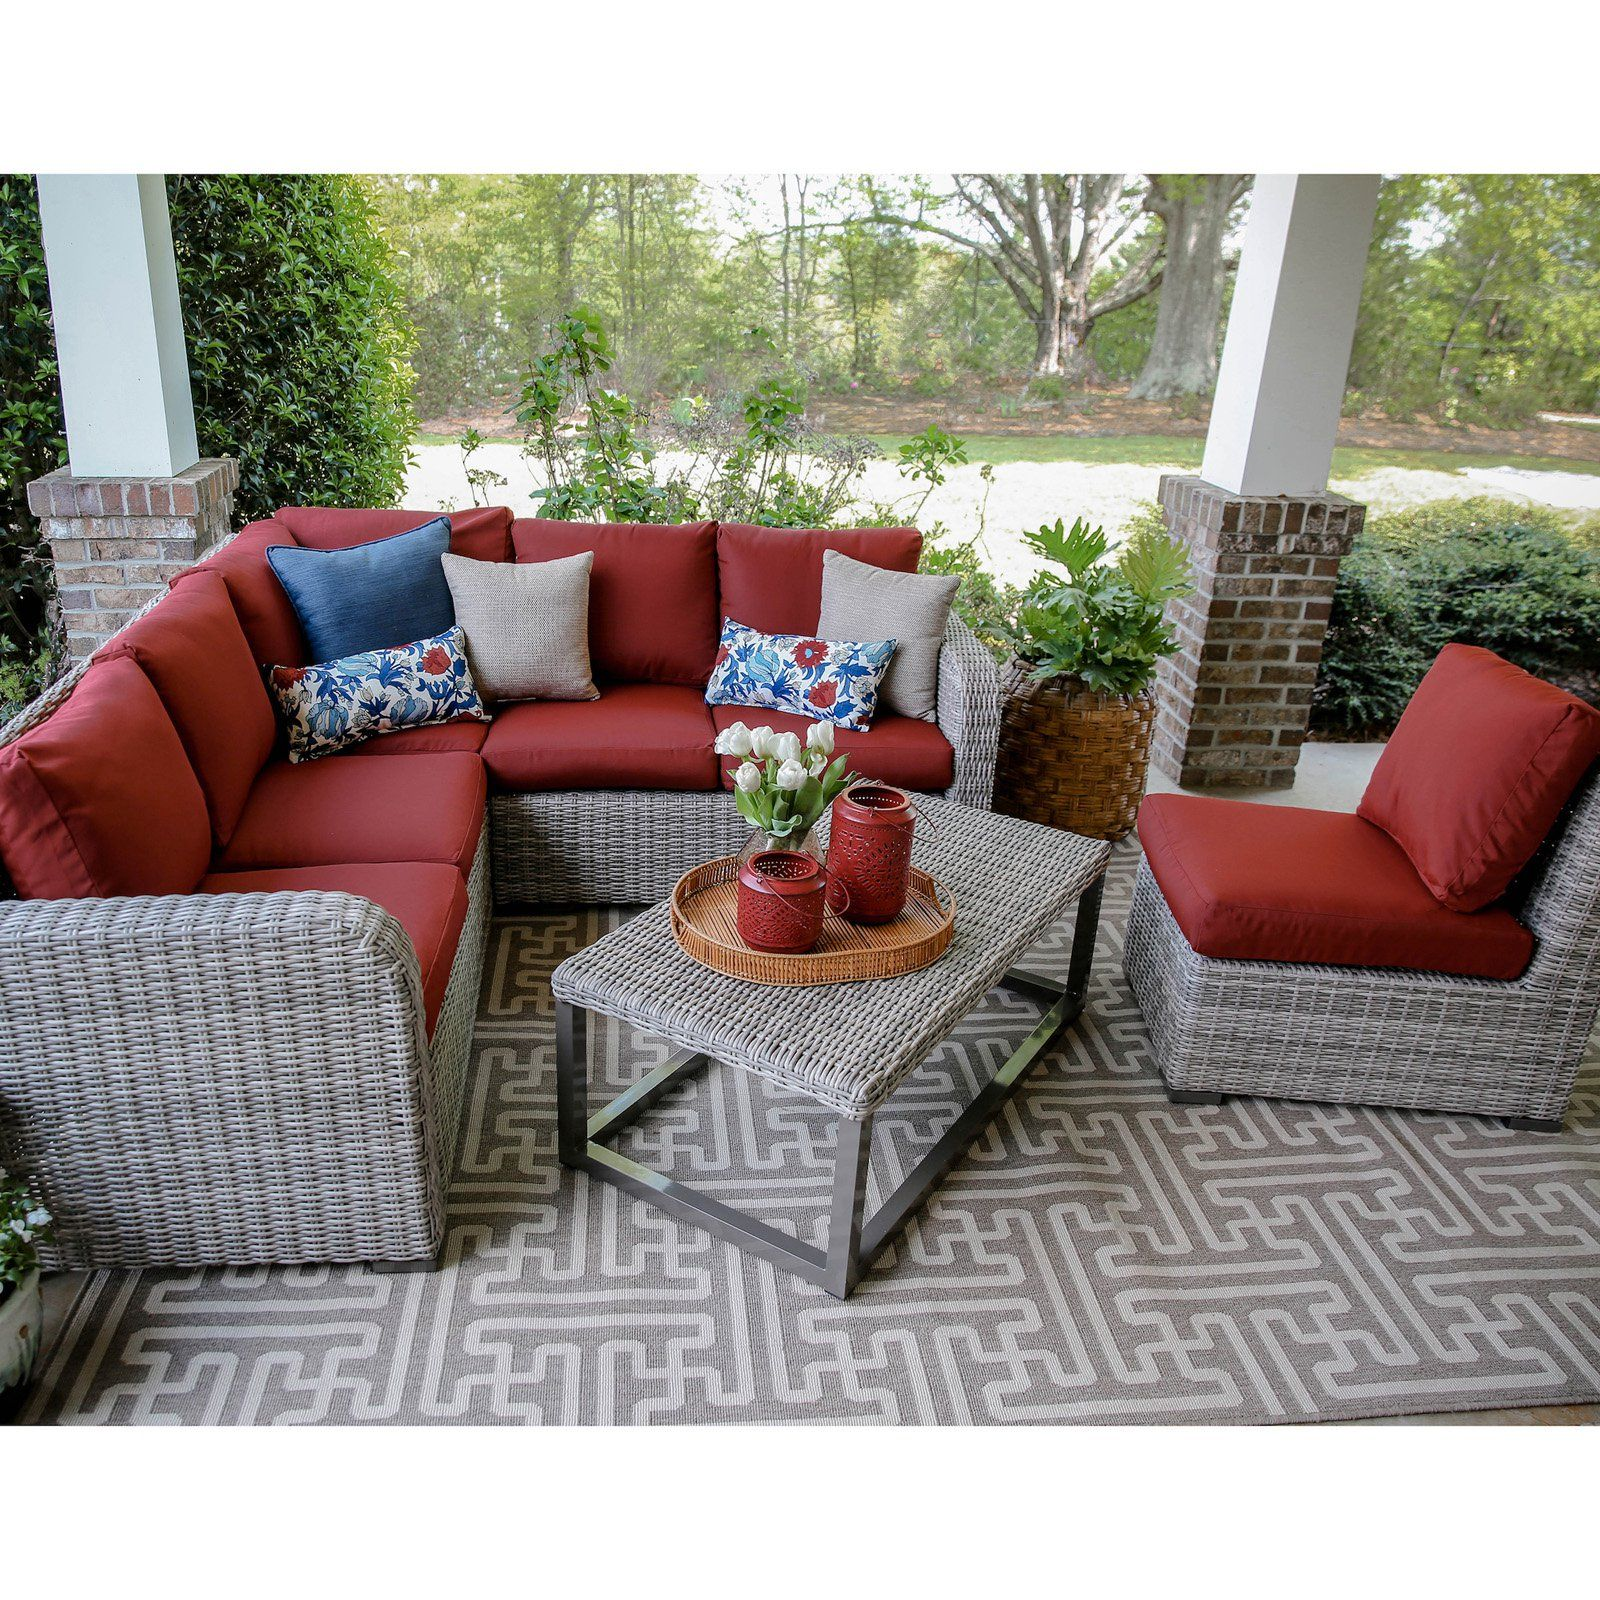 Outdoor Leisure Made Forsyth Wicker 5 Piece Corner Sectional Patio